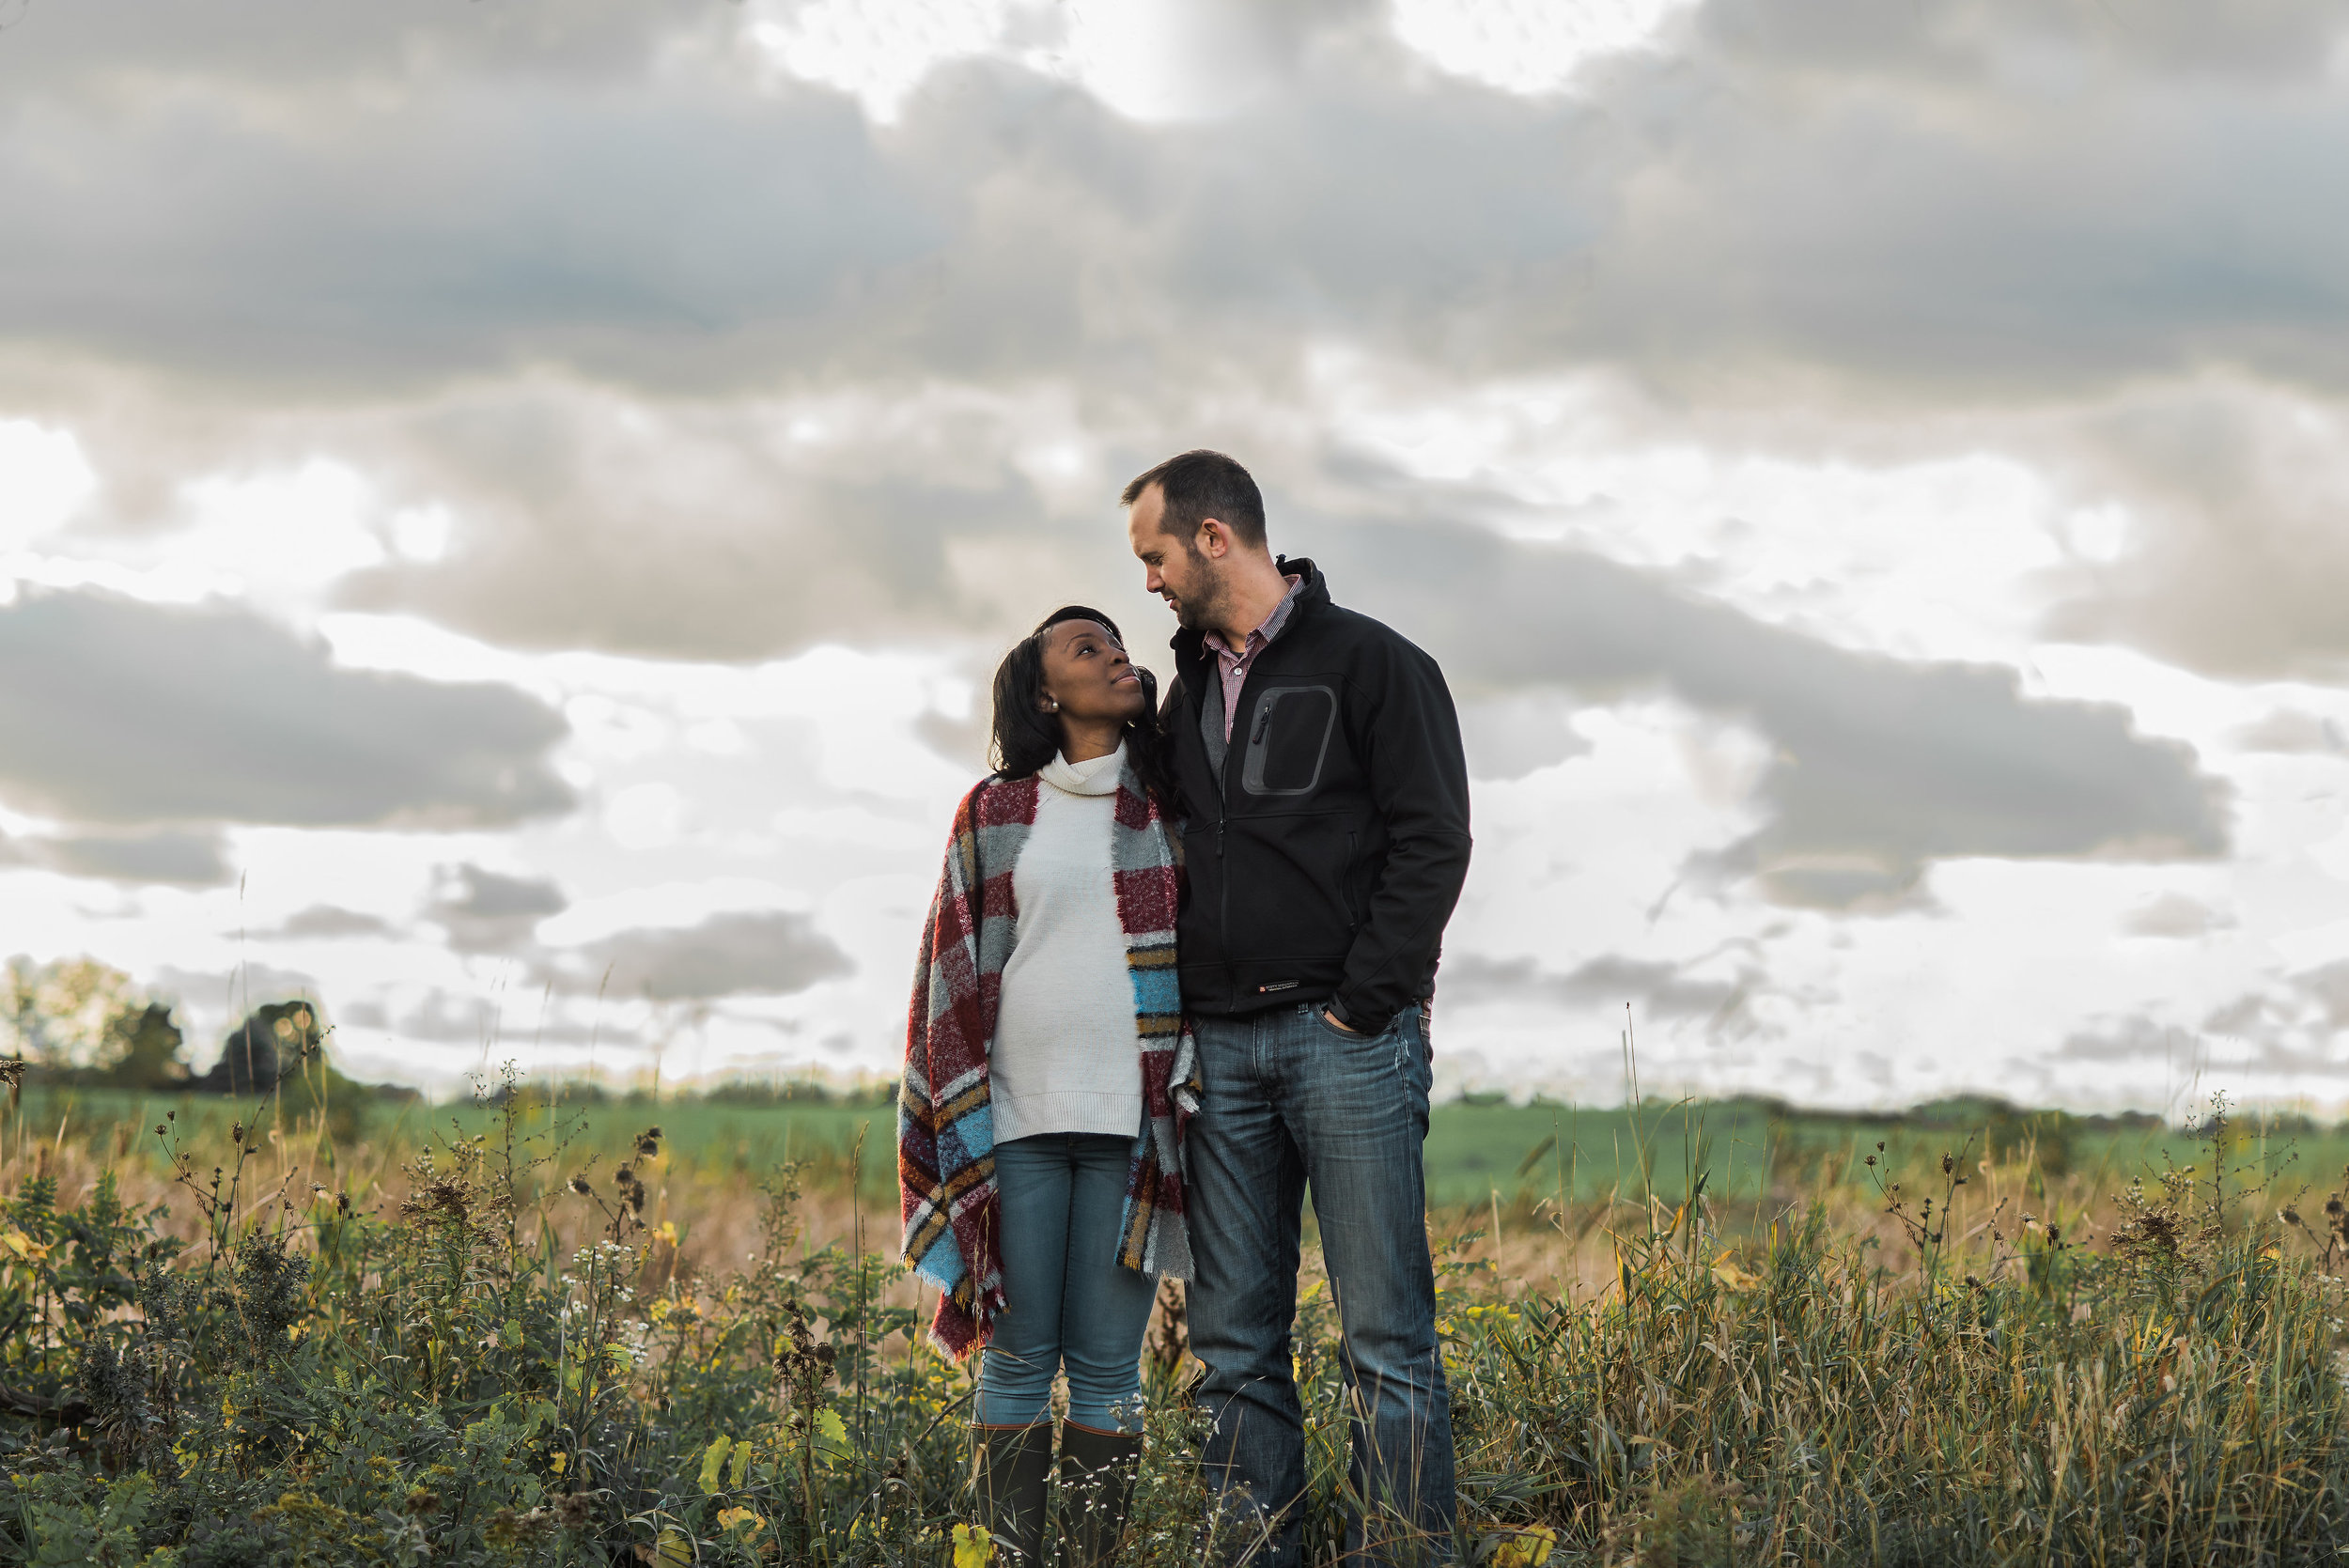 Grimsby Niagara-region couple maternity lifestyle photo sessiongraphy